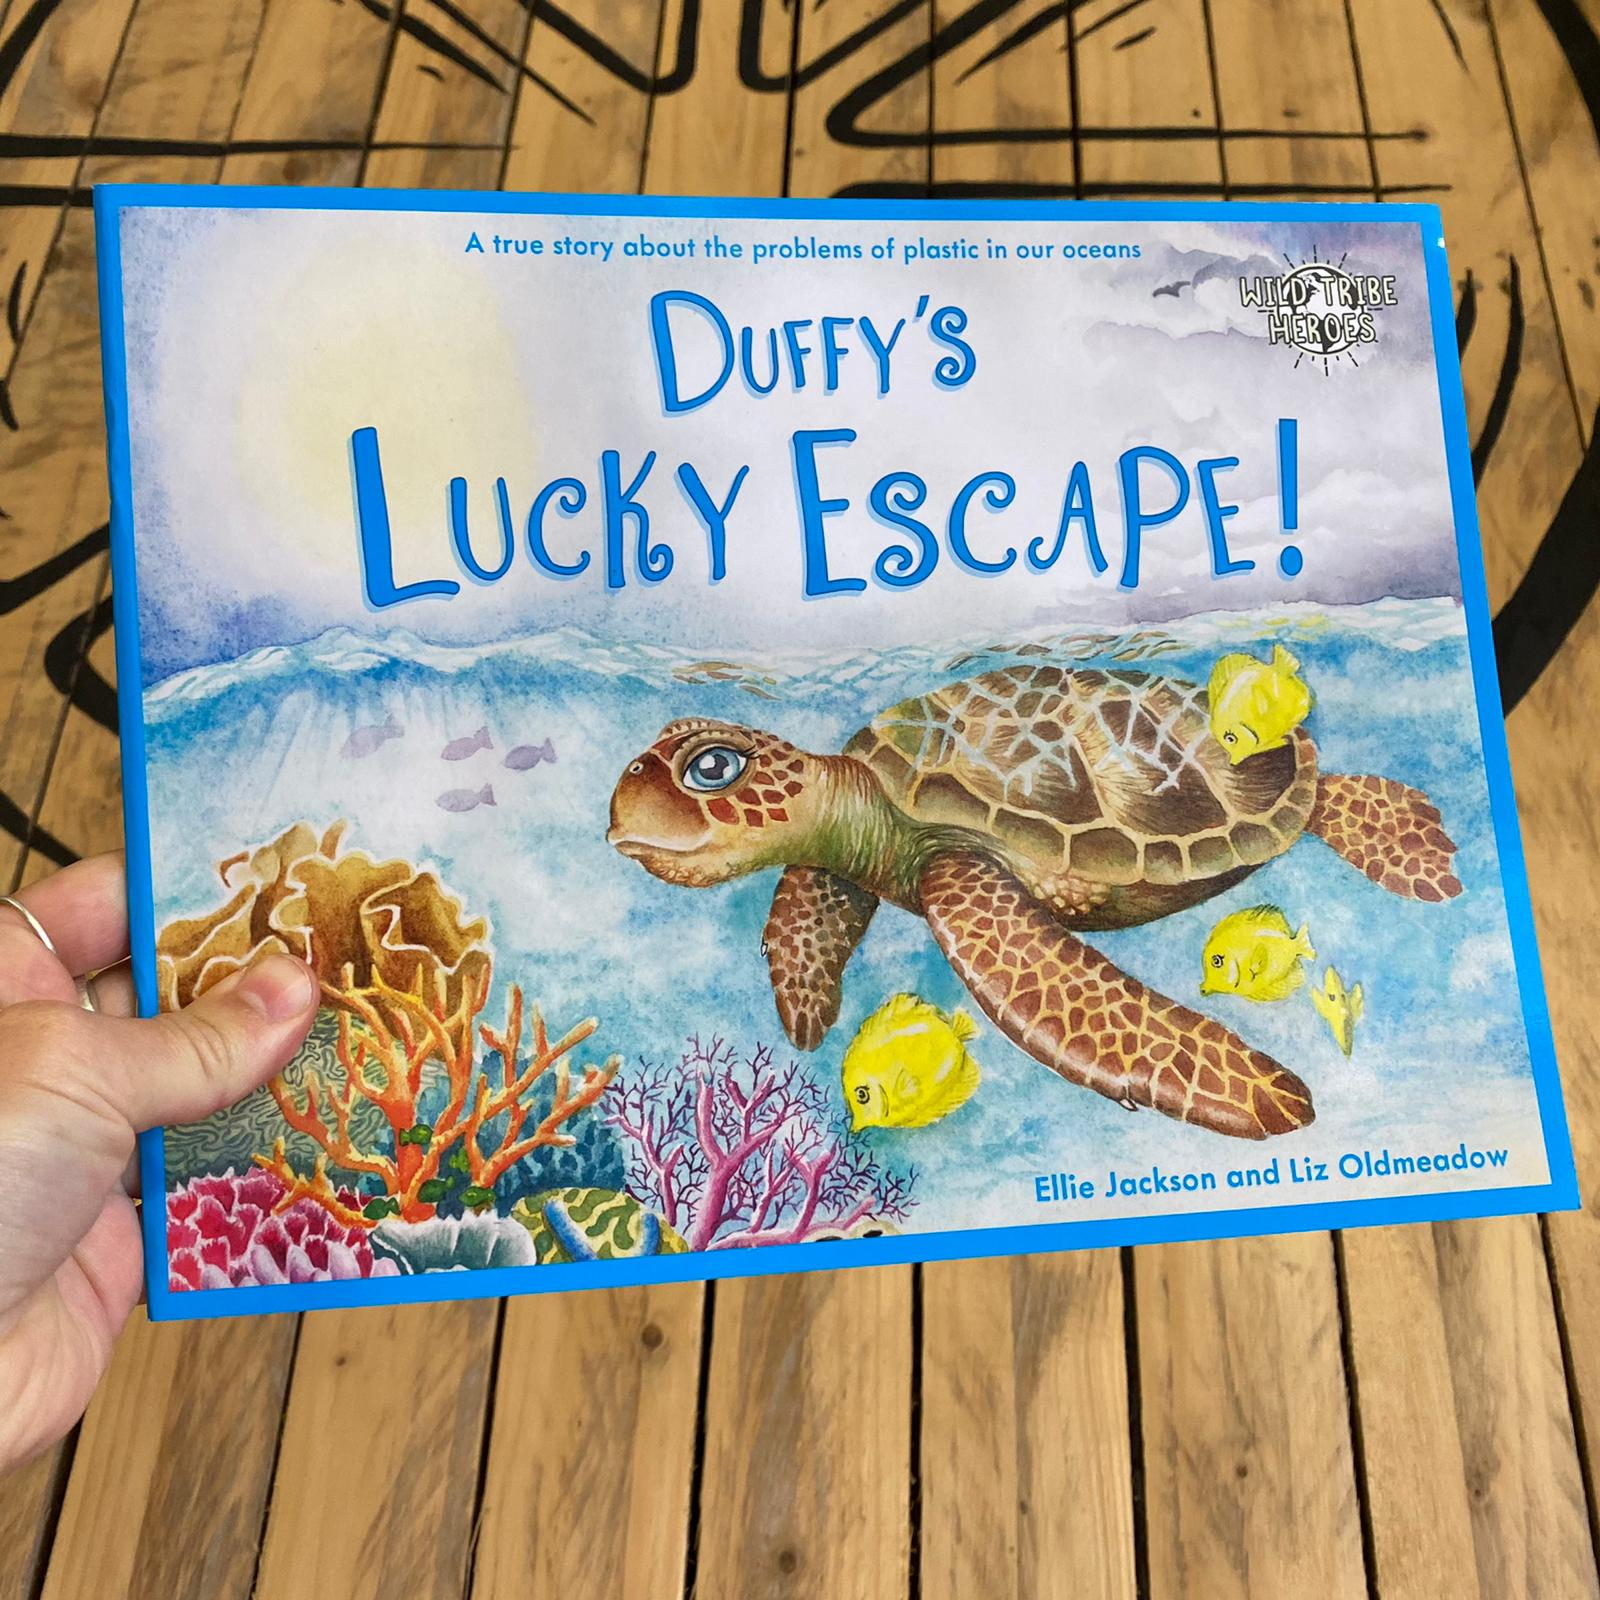 Duffy's Lucky Escape | Wild Tribe